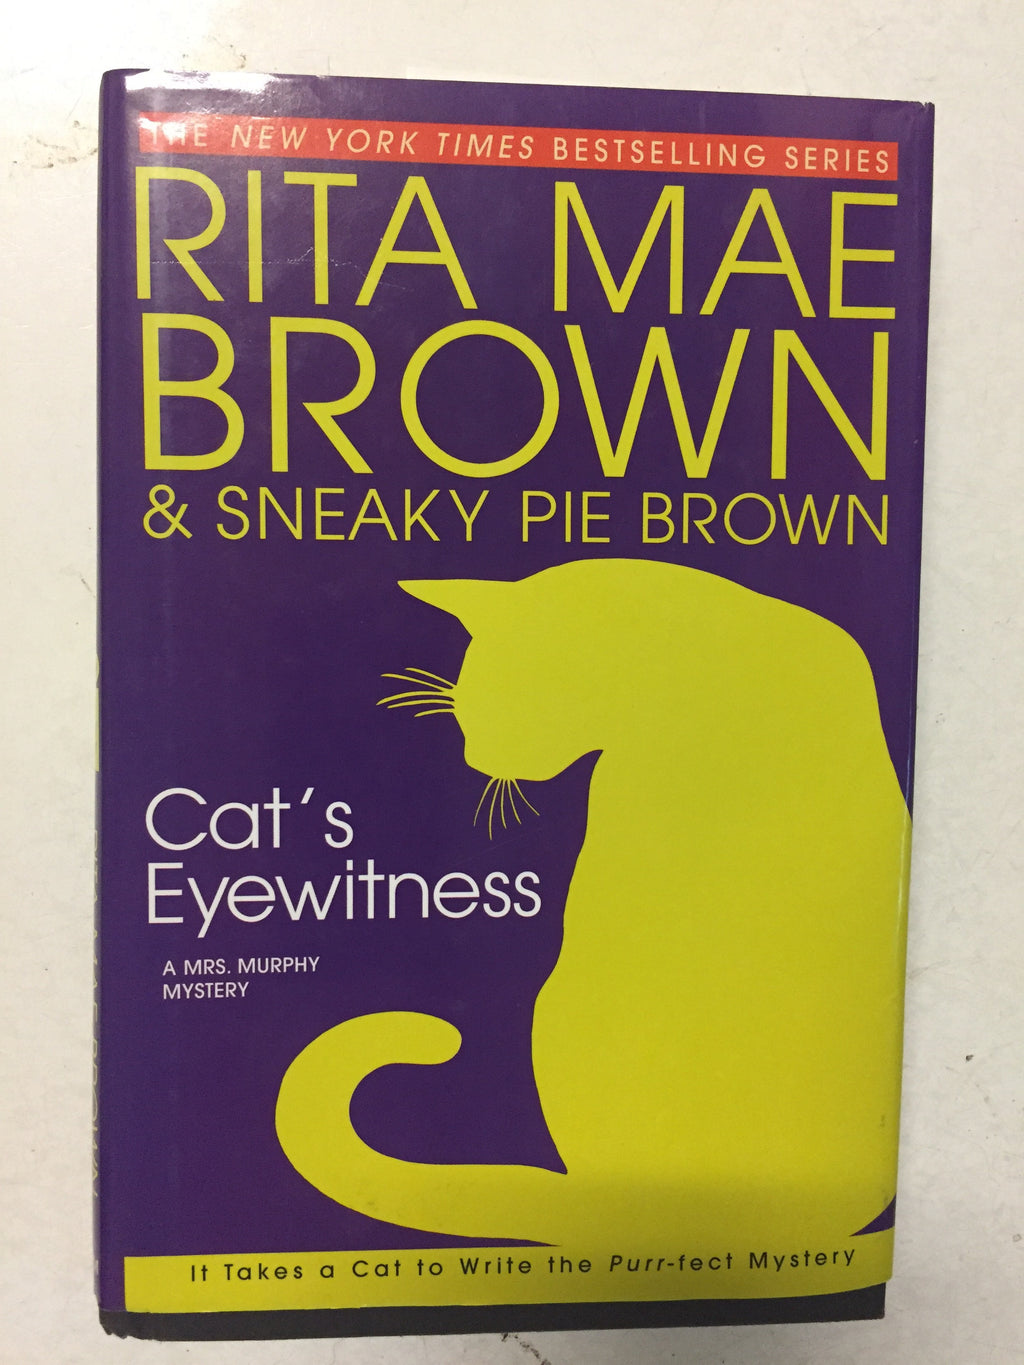 Cat's Eyewitness - Slick Cat Books